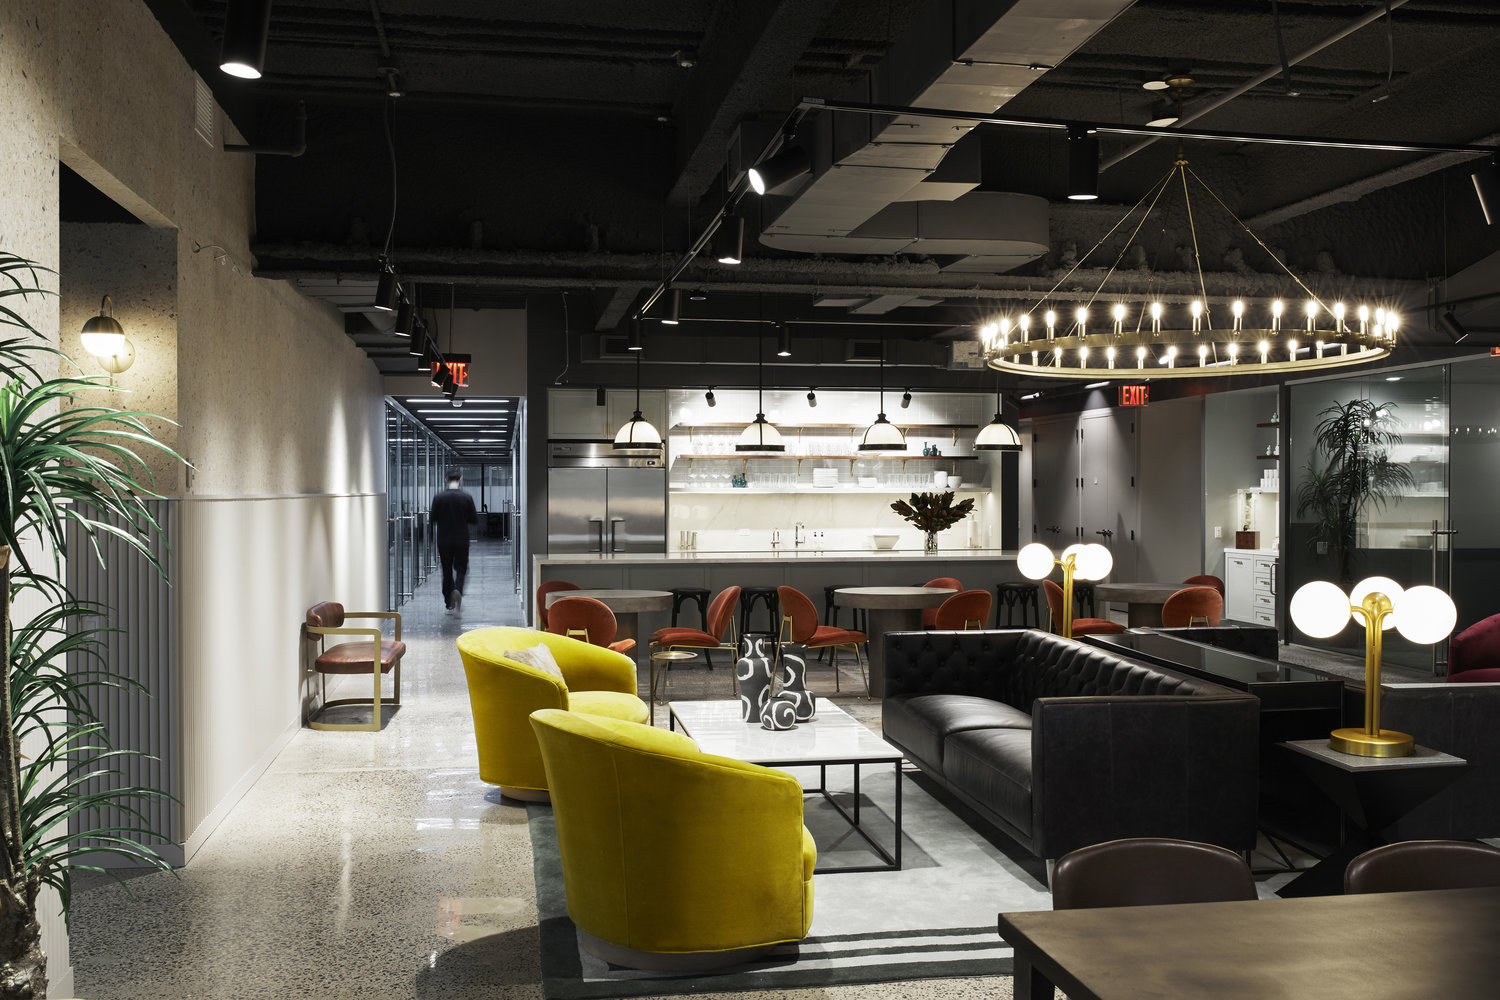 modern-industrial common area with comfortable furniture at a coworking space